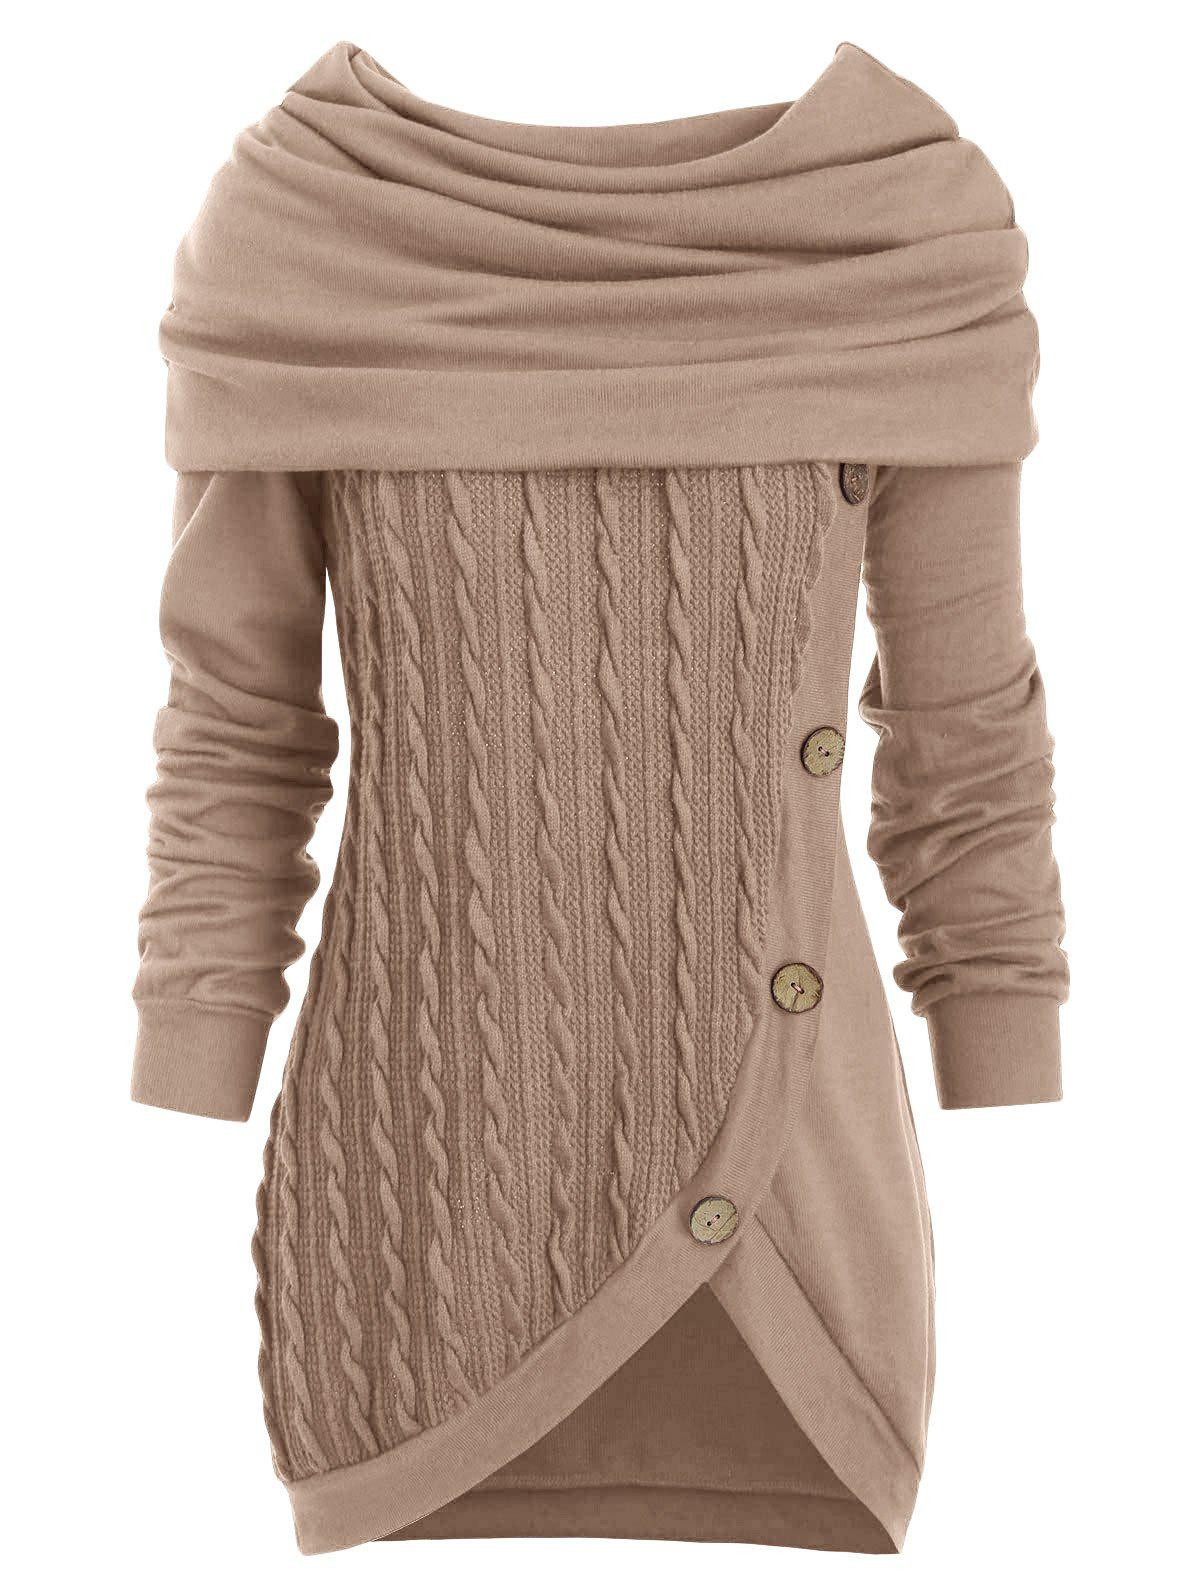 Unique Cowl Neck Cable Knit Tunic Knitwear